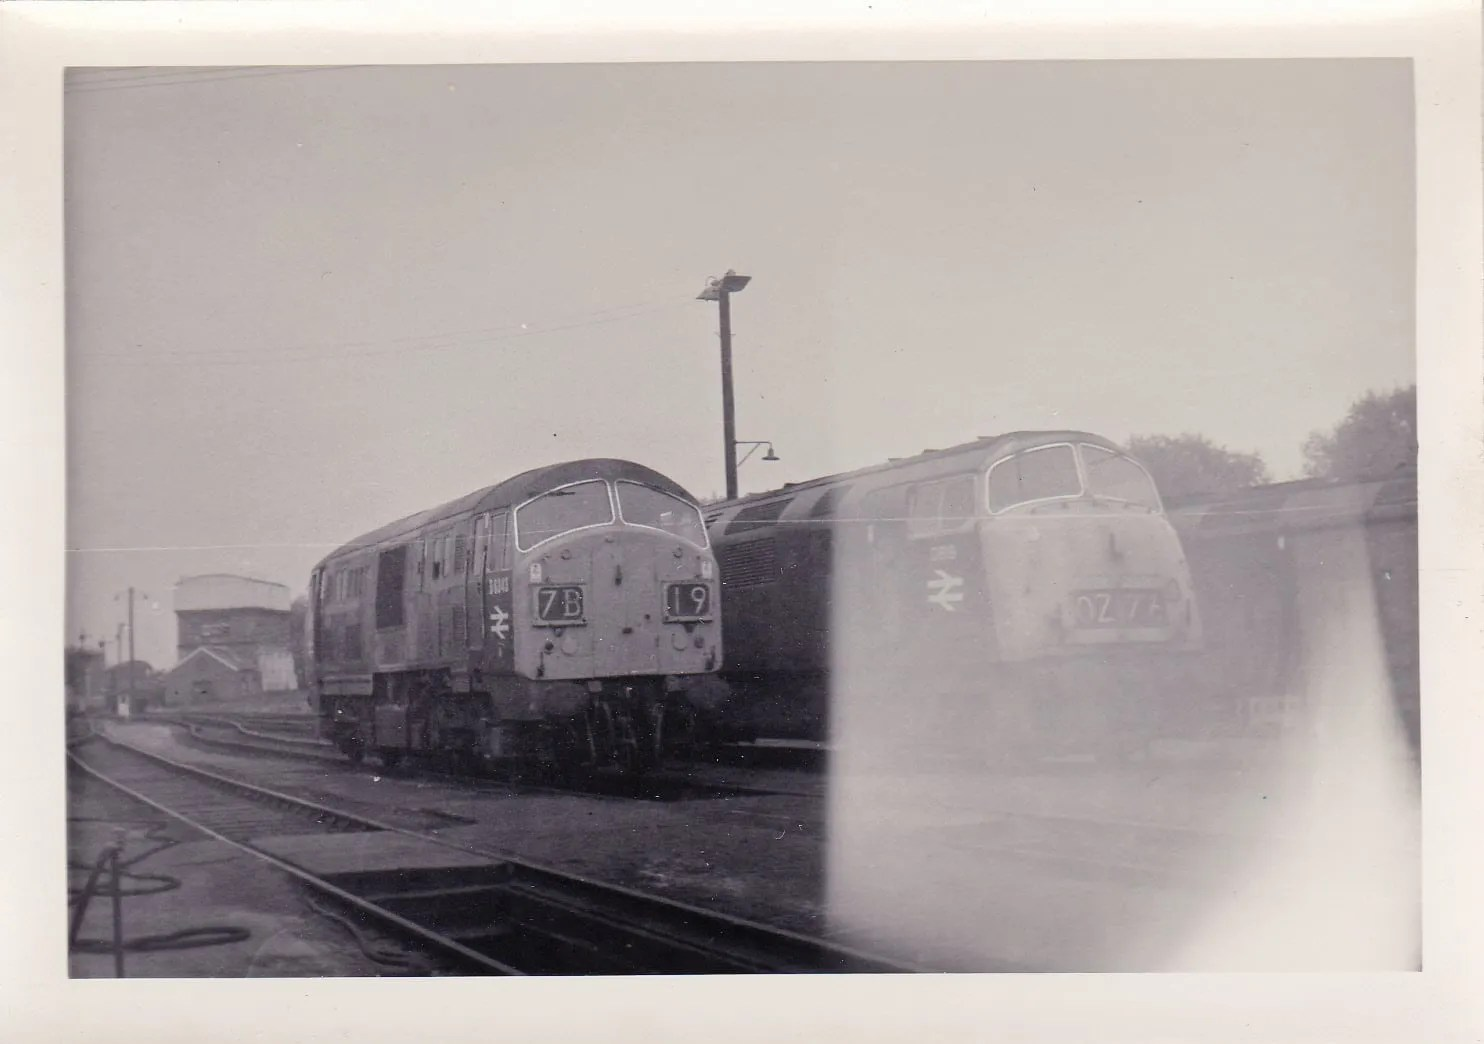 Class 22 6343 and Class 42 819 Goliath at Exeter St Davids depot June 1971